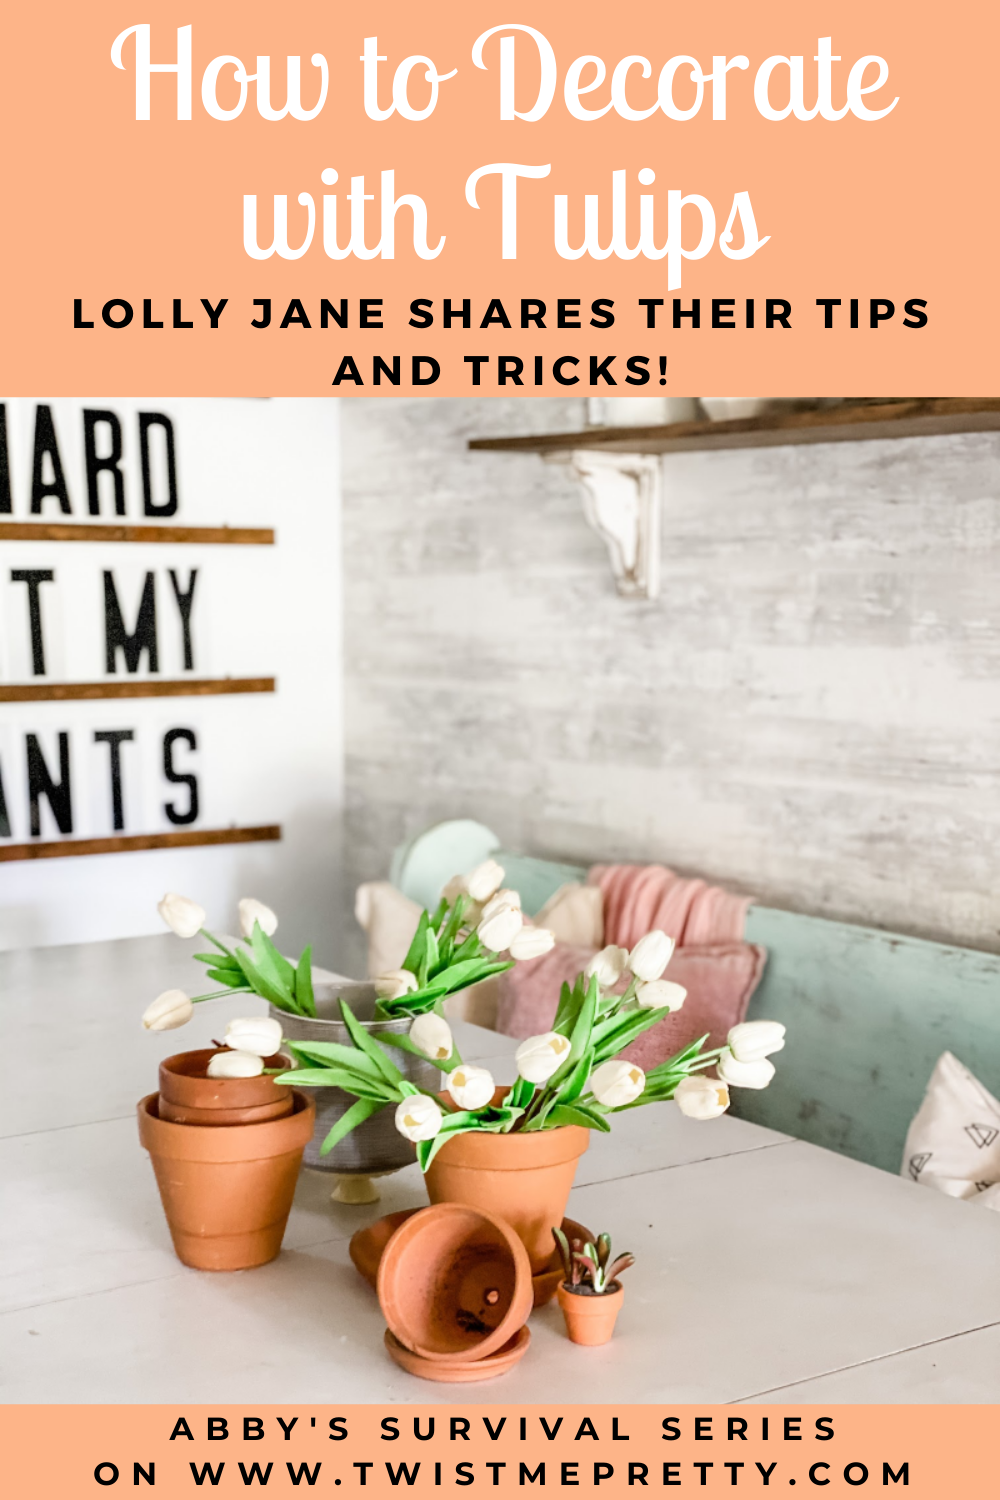 How to Decorate with Tulips from Lolly Jane. www.TwistMePretty.com